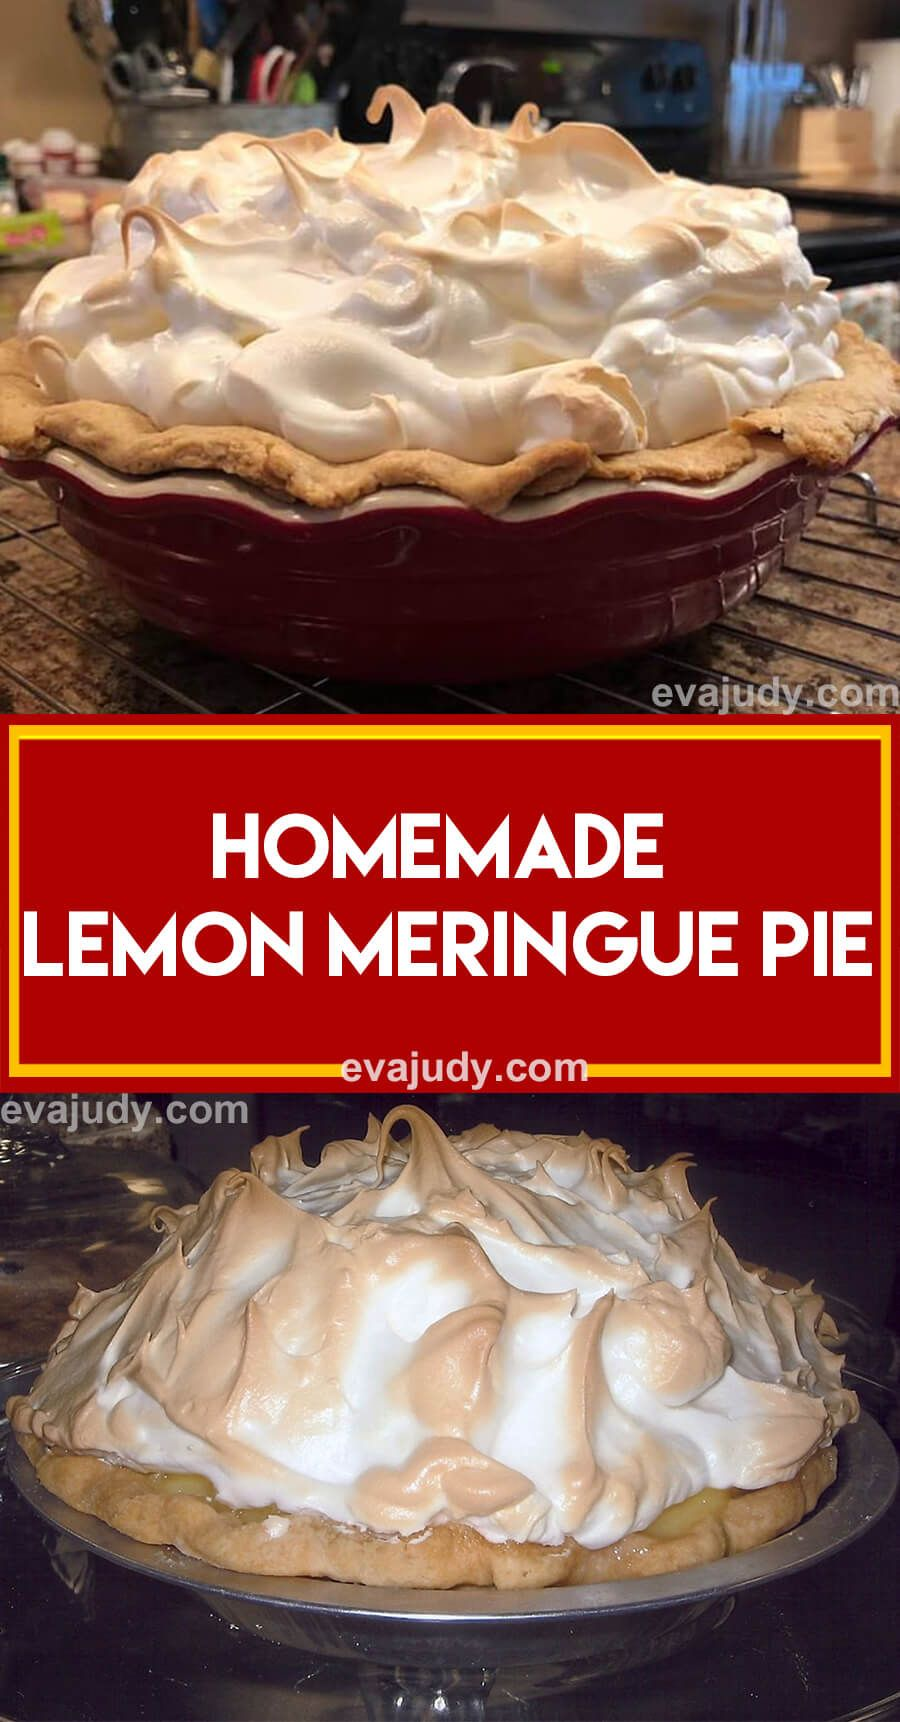 This Classic Lemon Meringue Pie Is Exceptional And Is Absolutely Beautiful To Behold The Lemon In 2020 Meringue Pie Recipes Lemon Meringue Pie Easy Lemon Meringue Pie